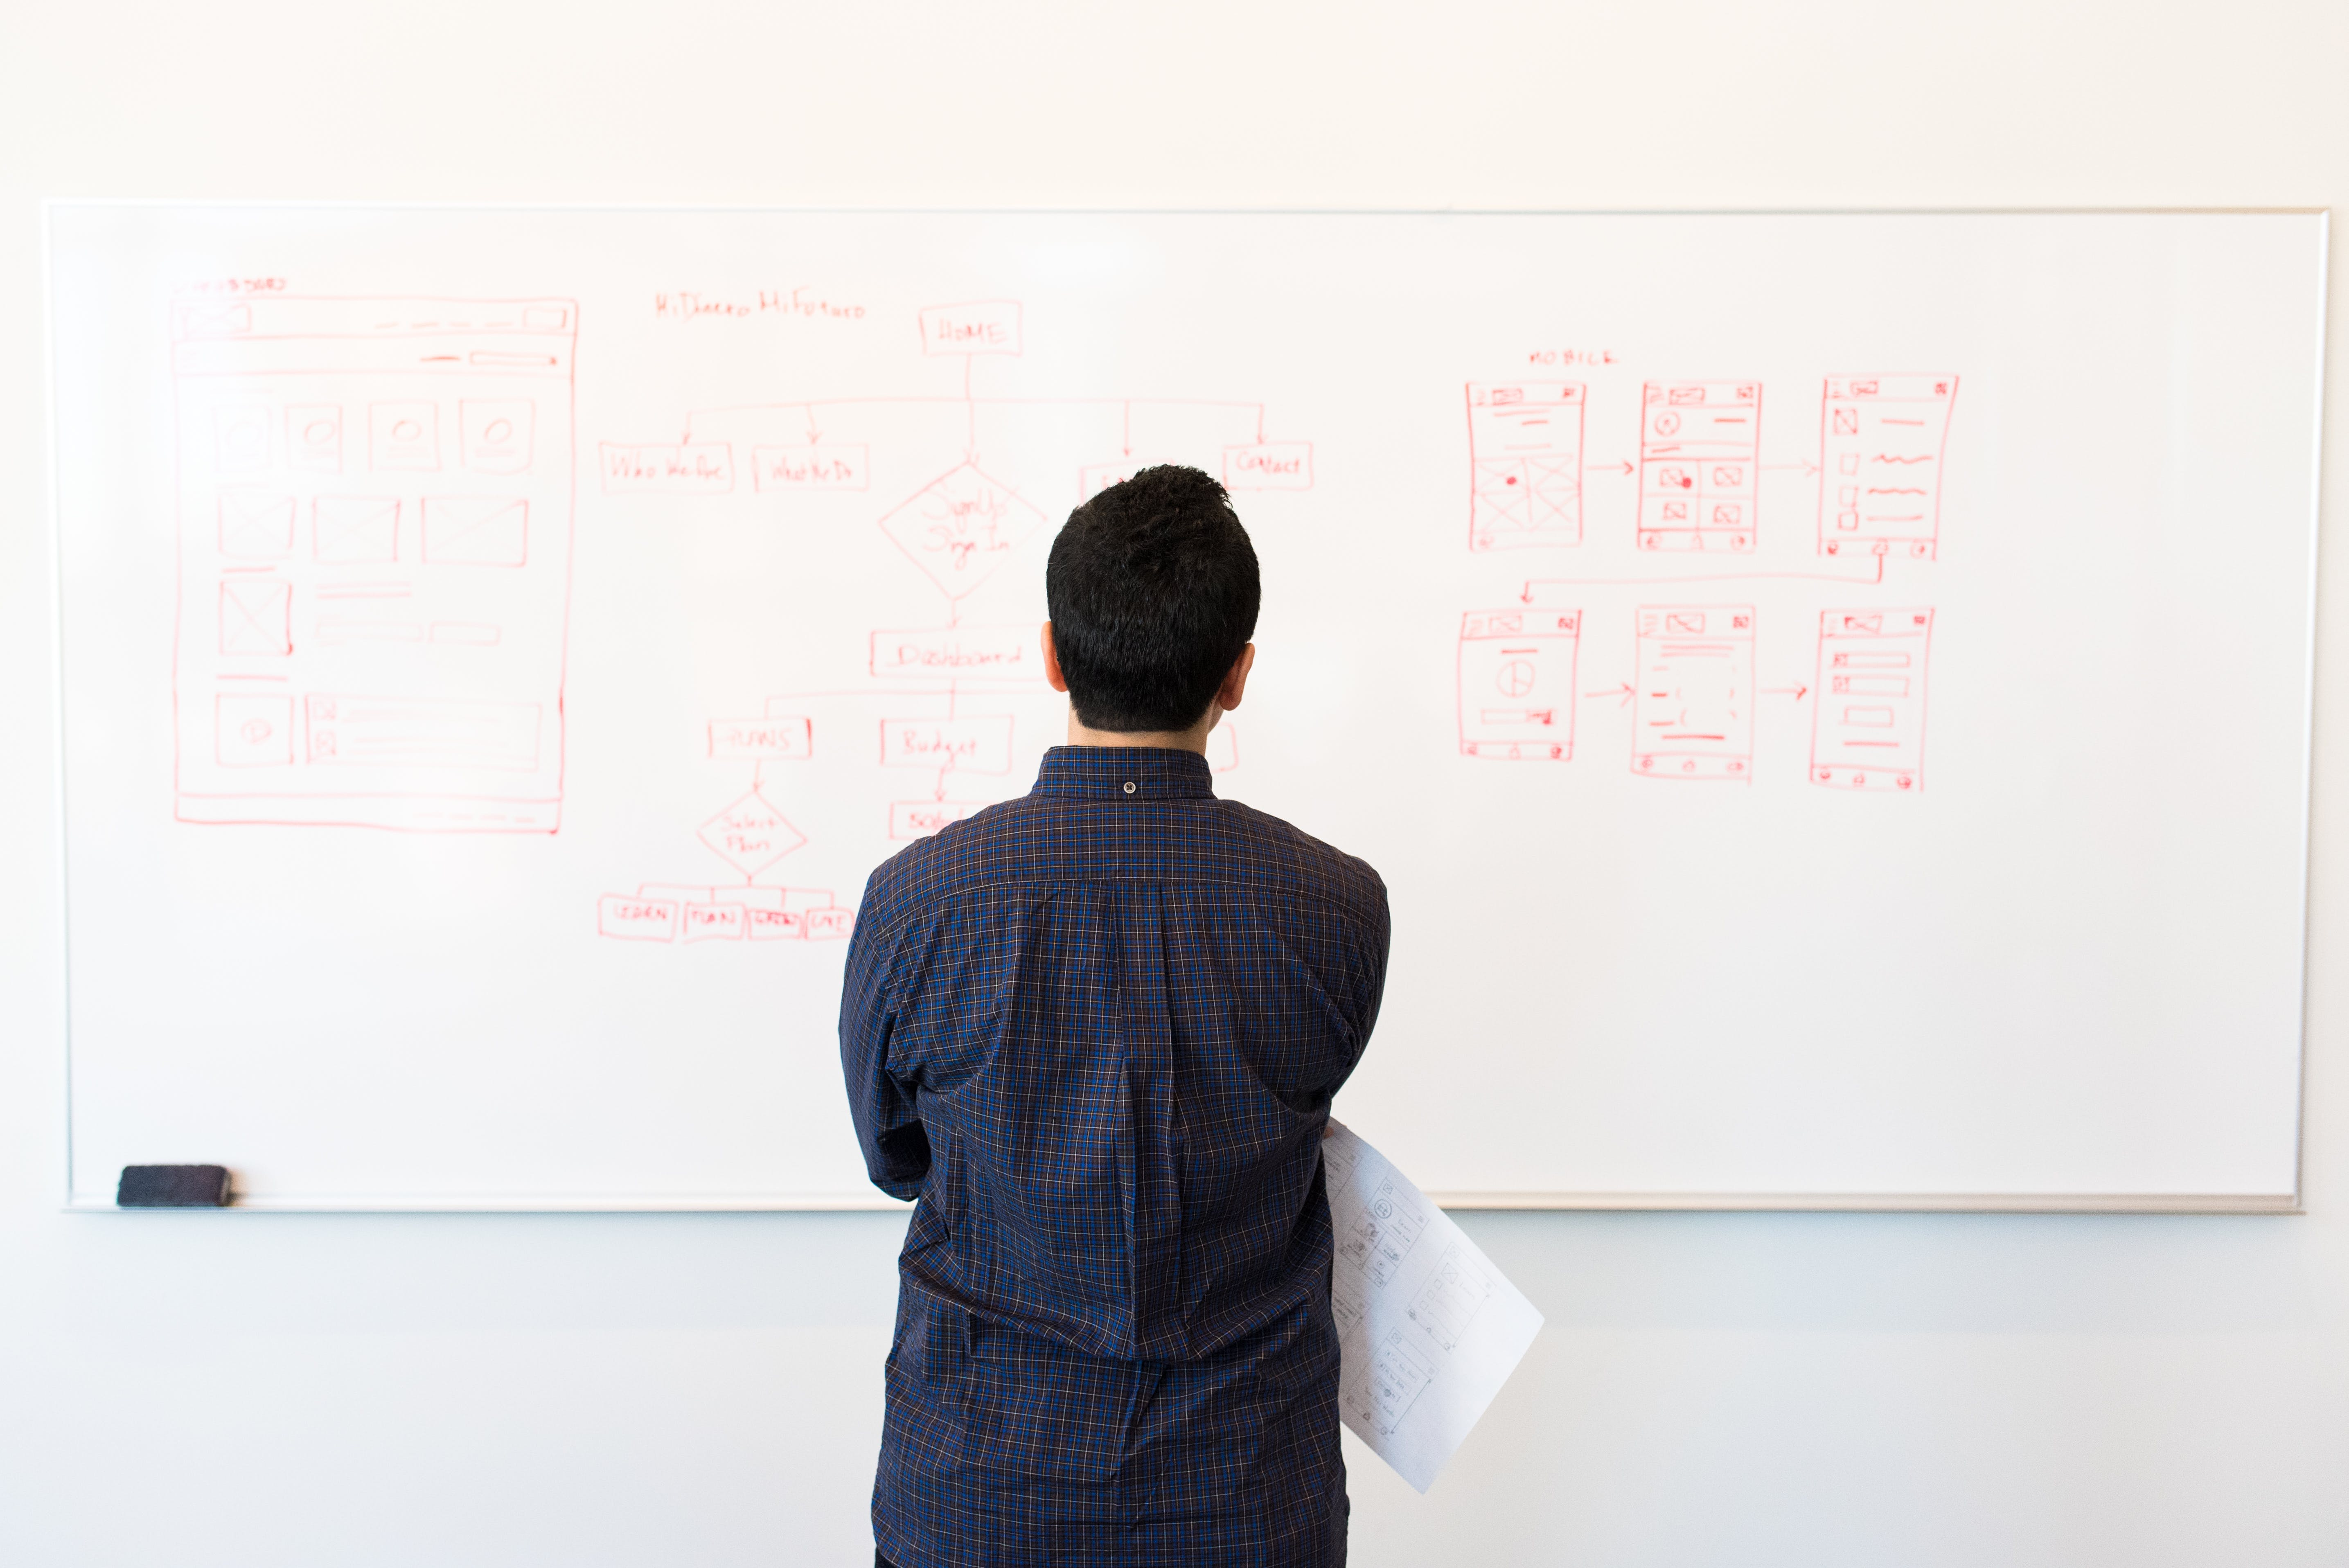 Man standing infront of whiteboard